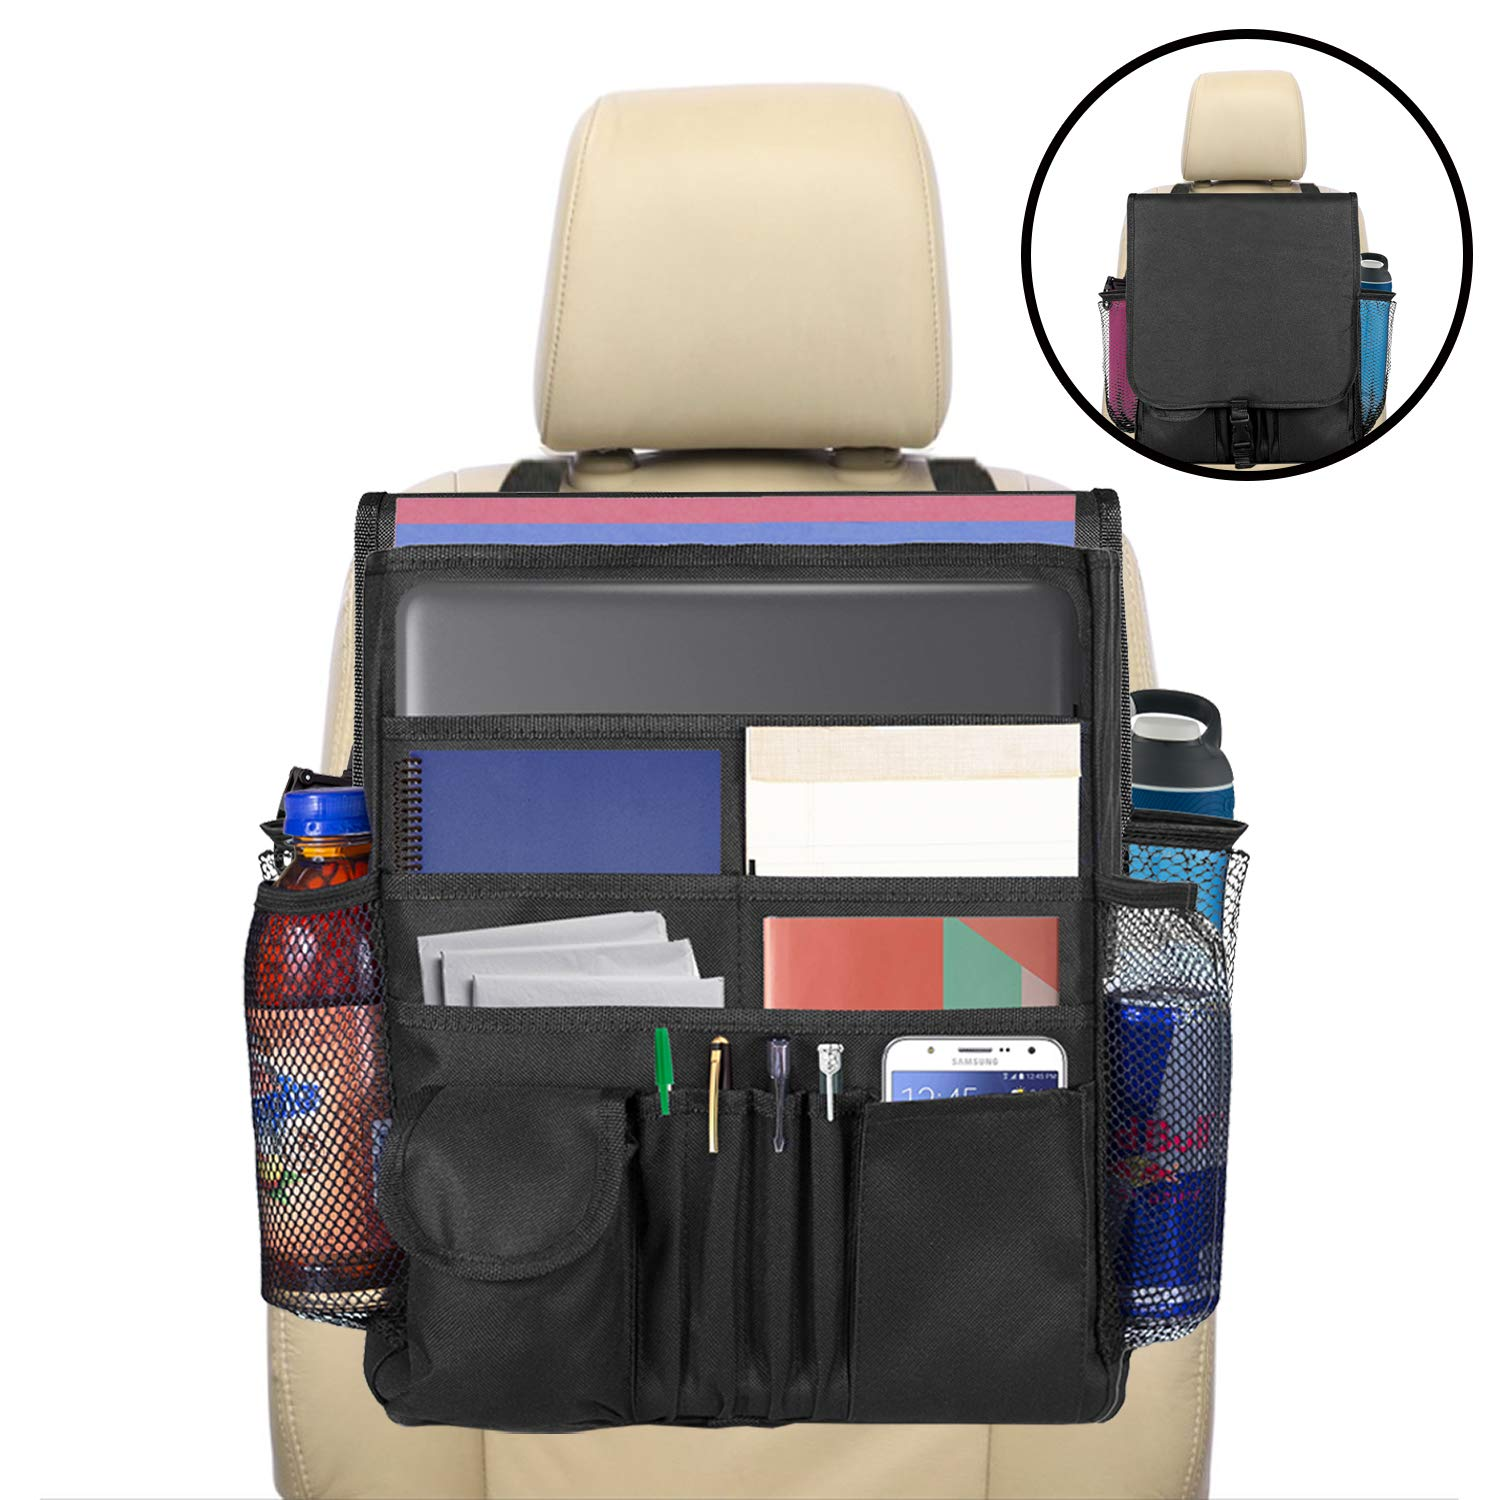 lebogner Car Organizer, Front Seat Storage Organizer, Small Driver Accessories Travel Car Office Organizer, Backseat Organizer with Large Secured Pockets, Car Seat Caddy, for Adults and Kids by lebogner